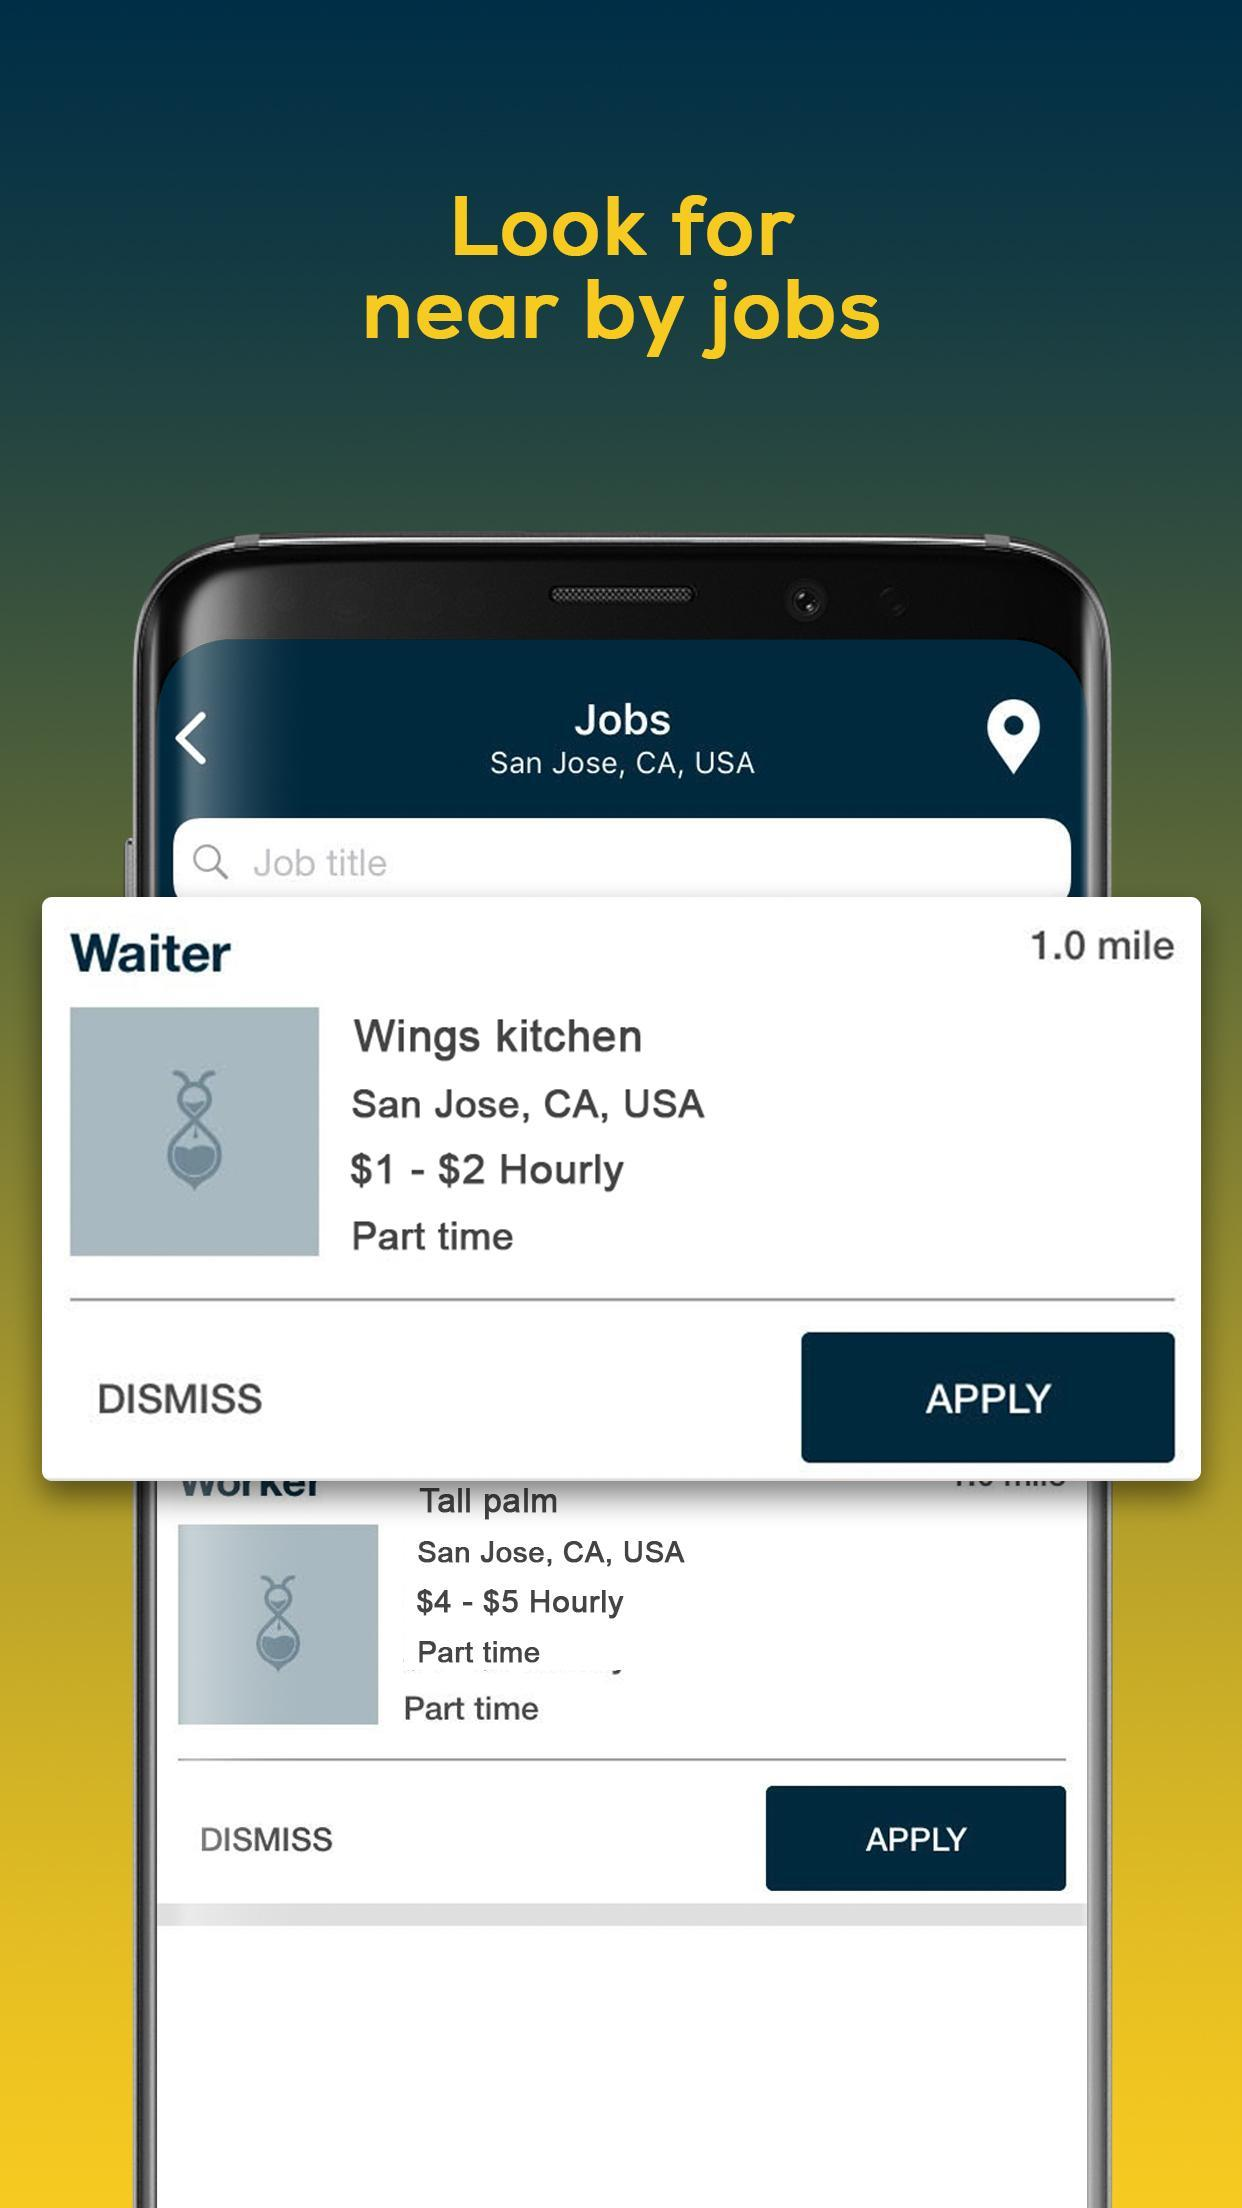 HourlyBee Workers - Last min, Part time, Full time for